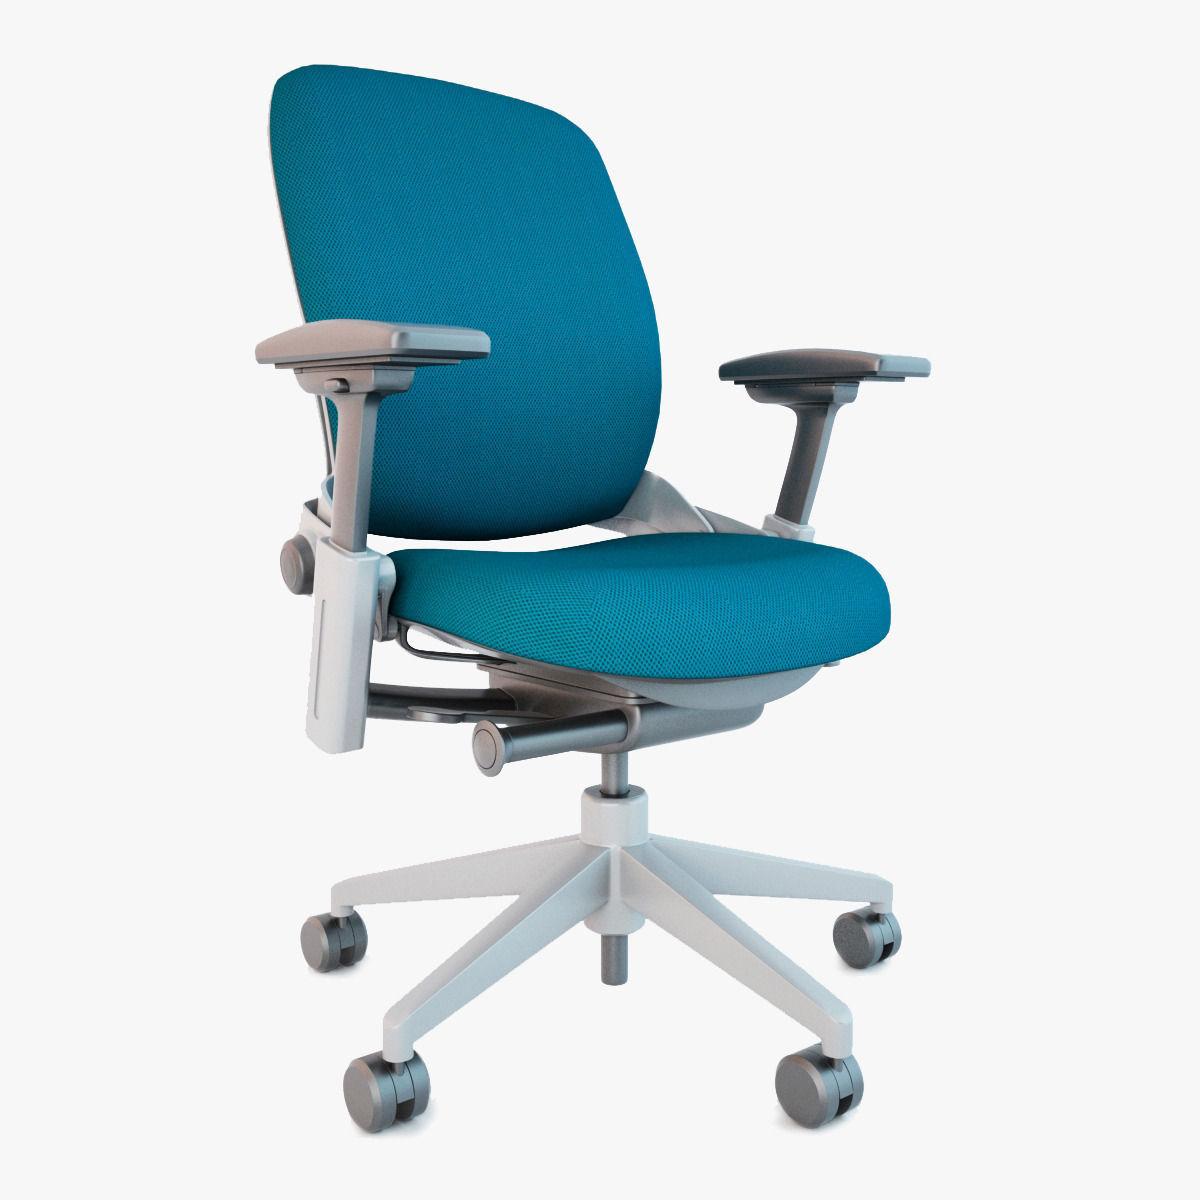 Steelcase leap office chair 3d model max obj fbx for Model furniture